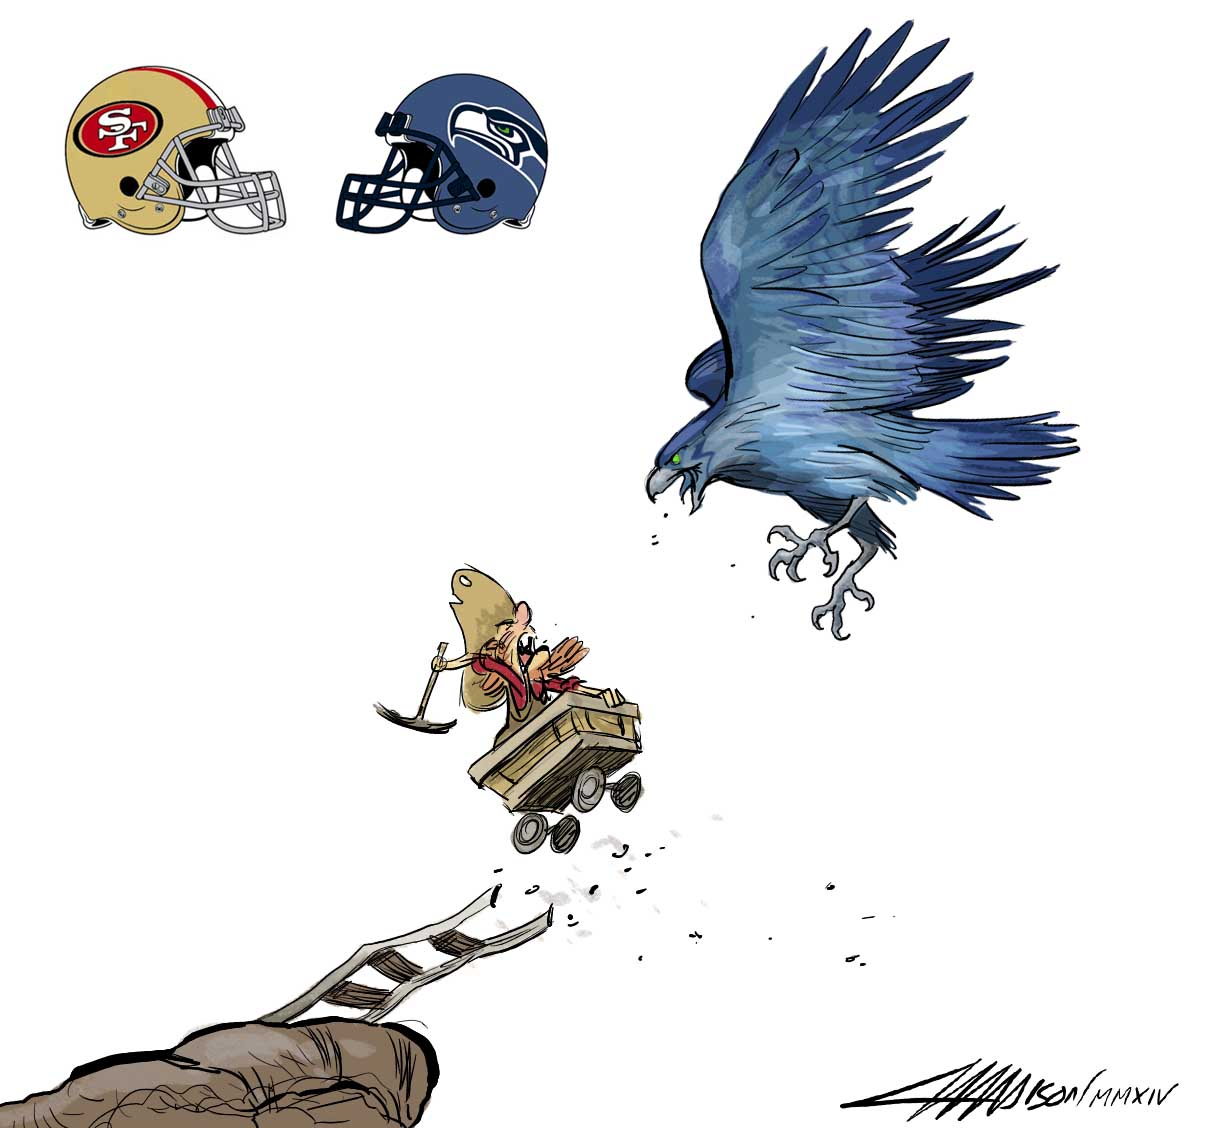 San Francisco 49ers vs Seattle Seahawks via Austin Madison Pixar Artist